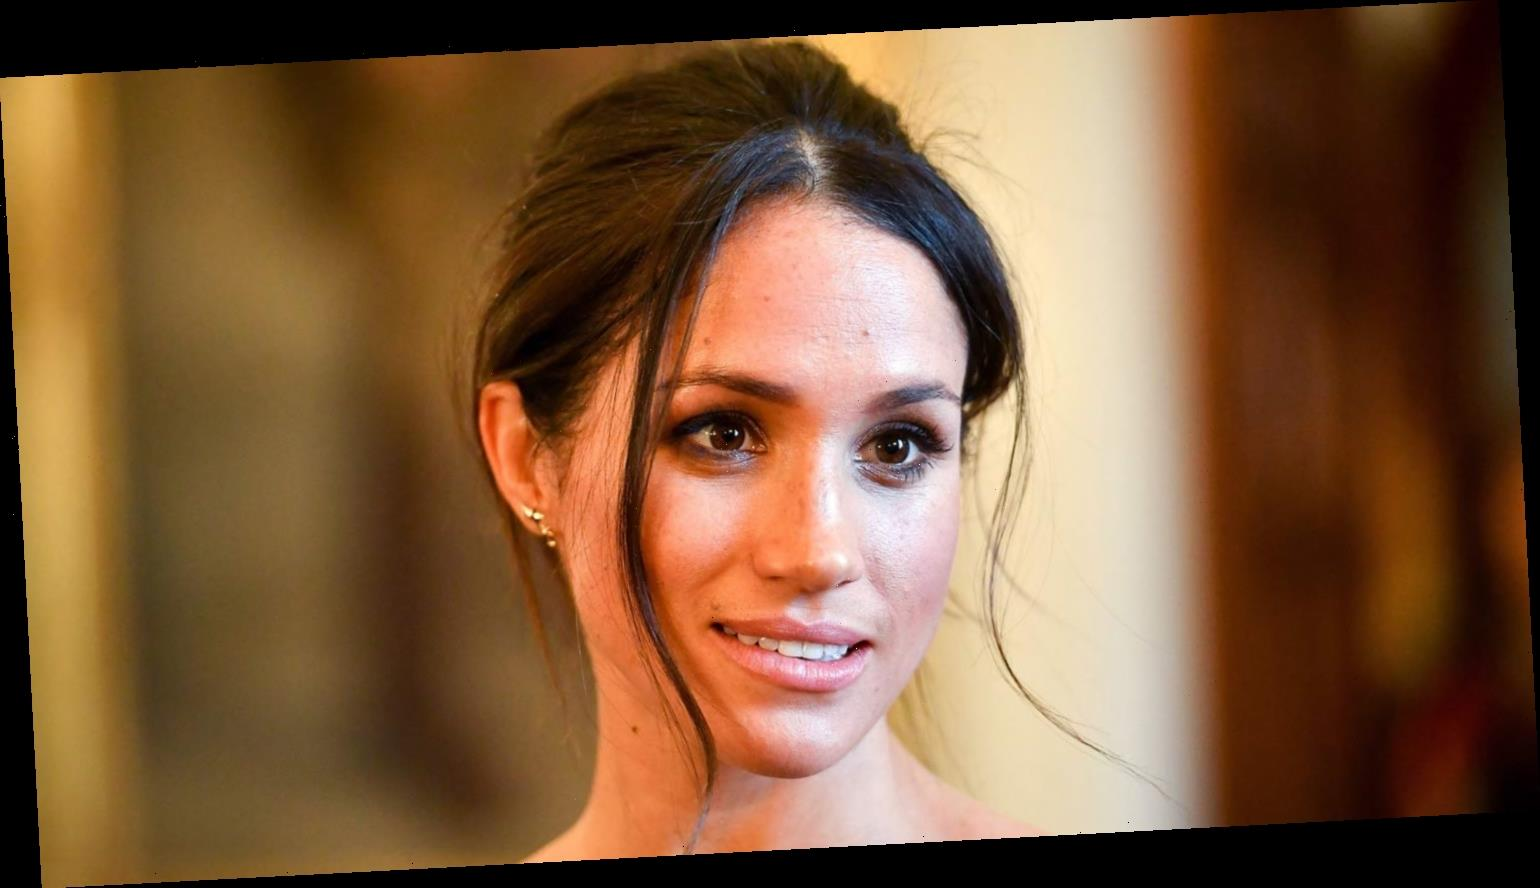 12 Celebs & Friends of Meghan Markle Who Spoke Up to Defend Her Amid Bullying Accusations